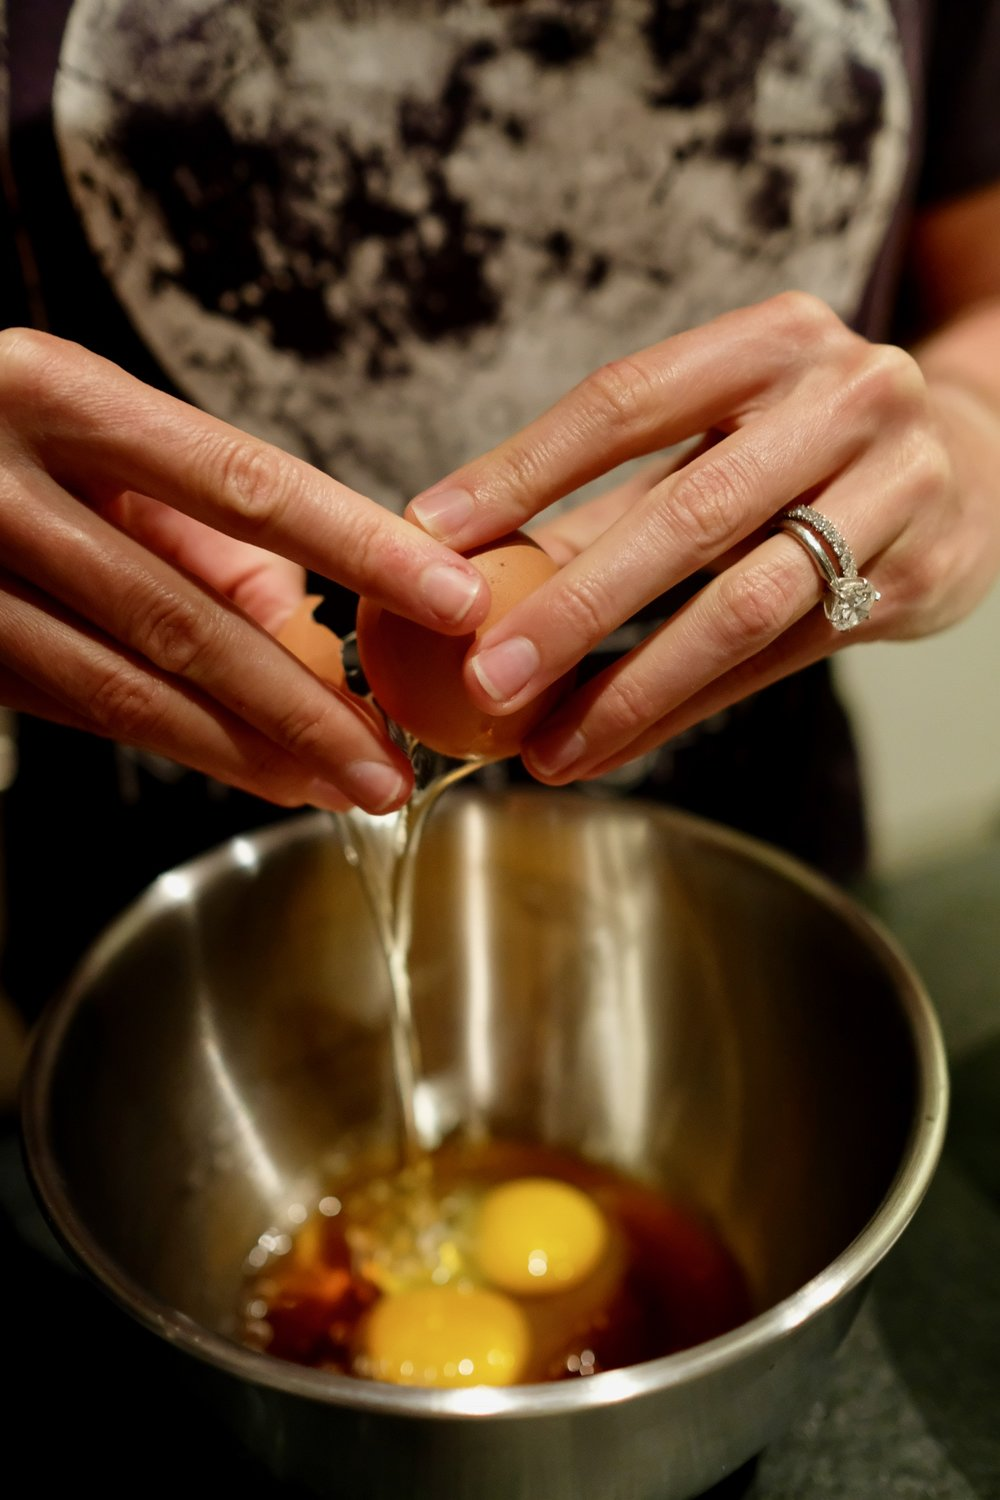 Combine the eggs, vanilla and maple syrup in a small bowl